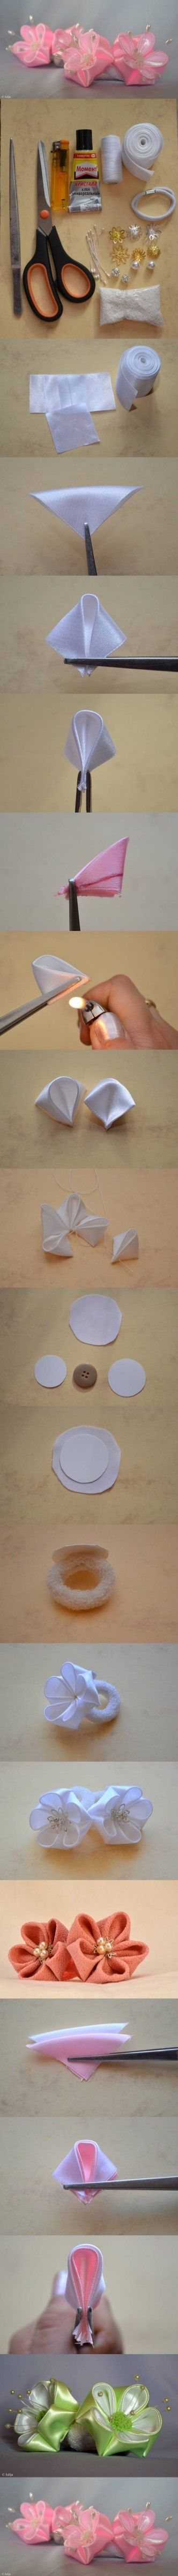 DIY Round Petals Ribbon Flower Pictures, Photos, and Images for Facebook, Tumblr, Pinterest, and Twitter